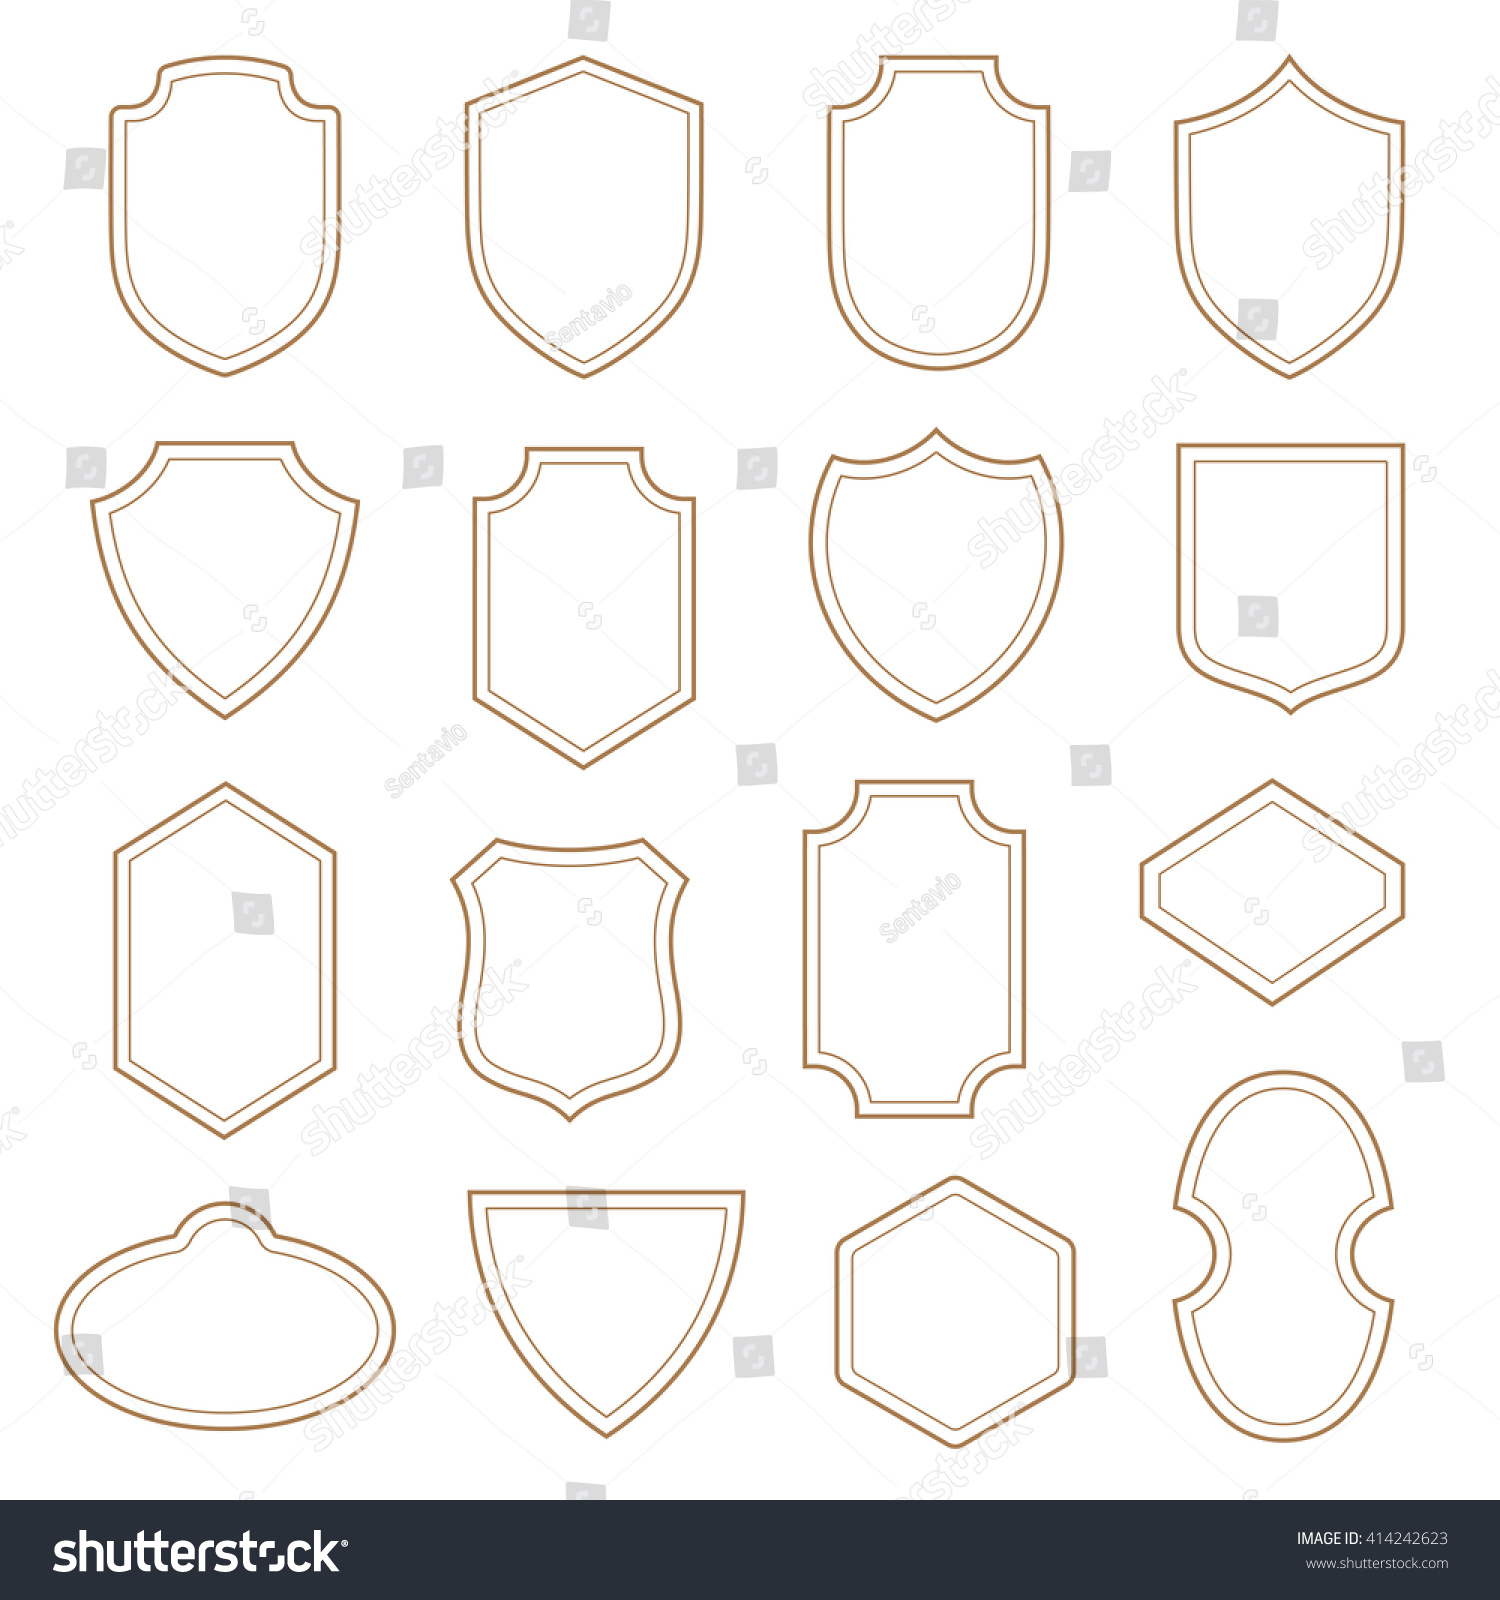 Vintage Labels Badges Shields Collection Vector Stock Vector HD ...